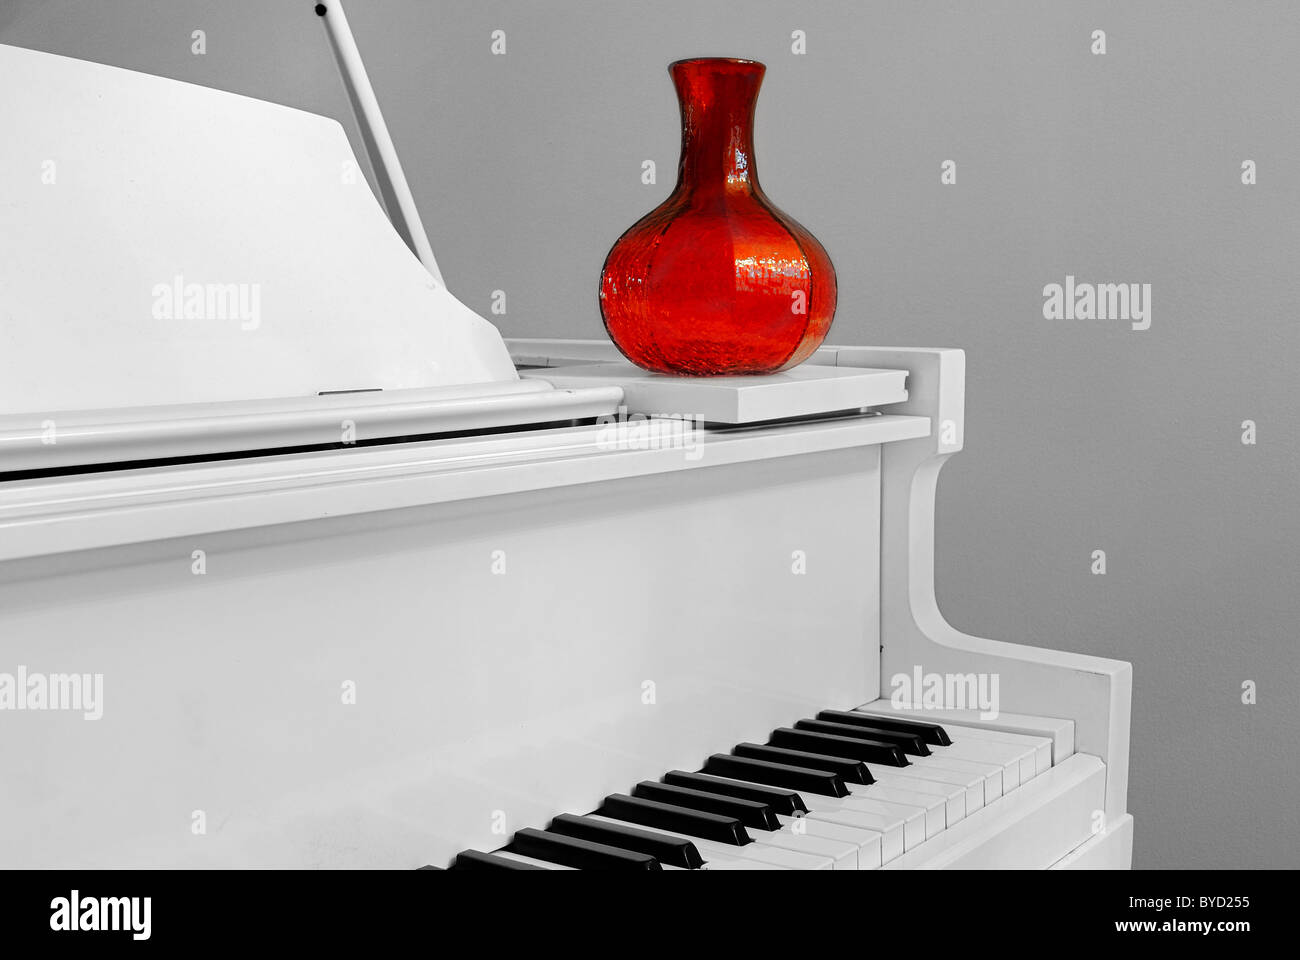 Corner of a piano with a red vase in a home interior. - Stock Image